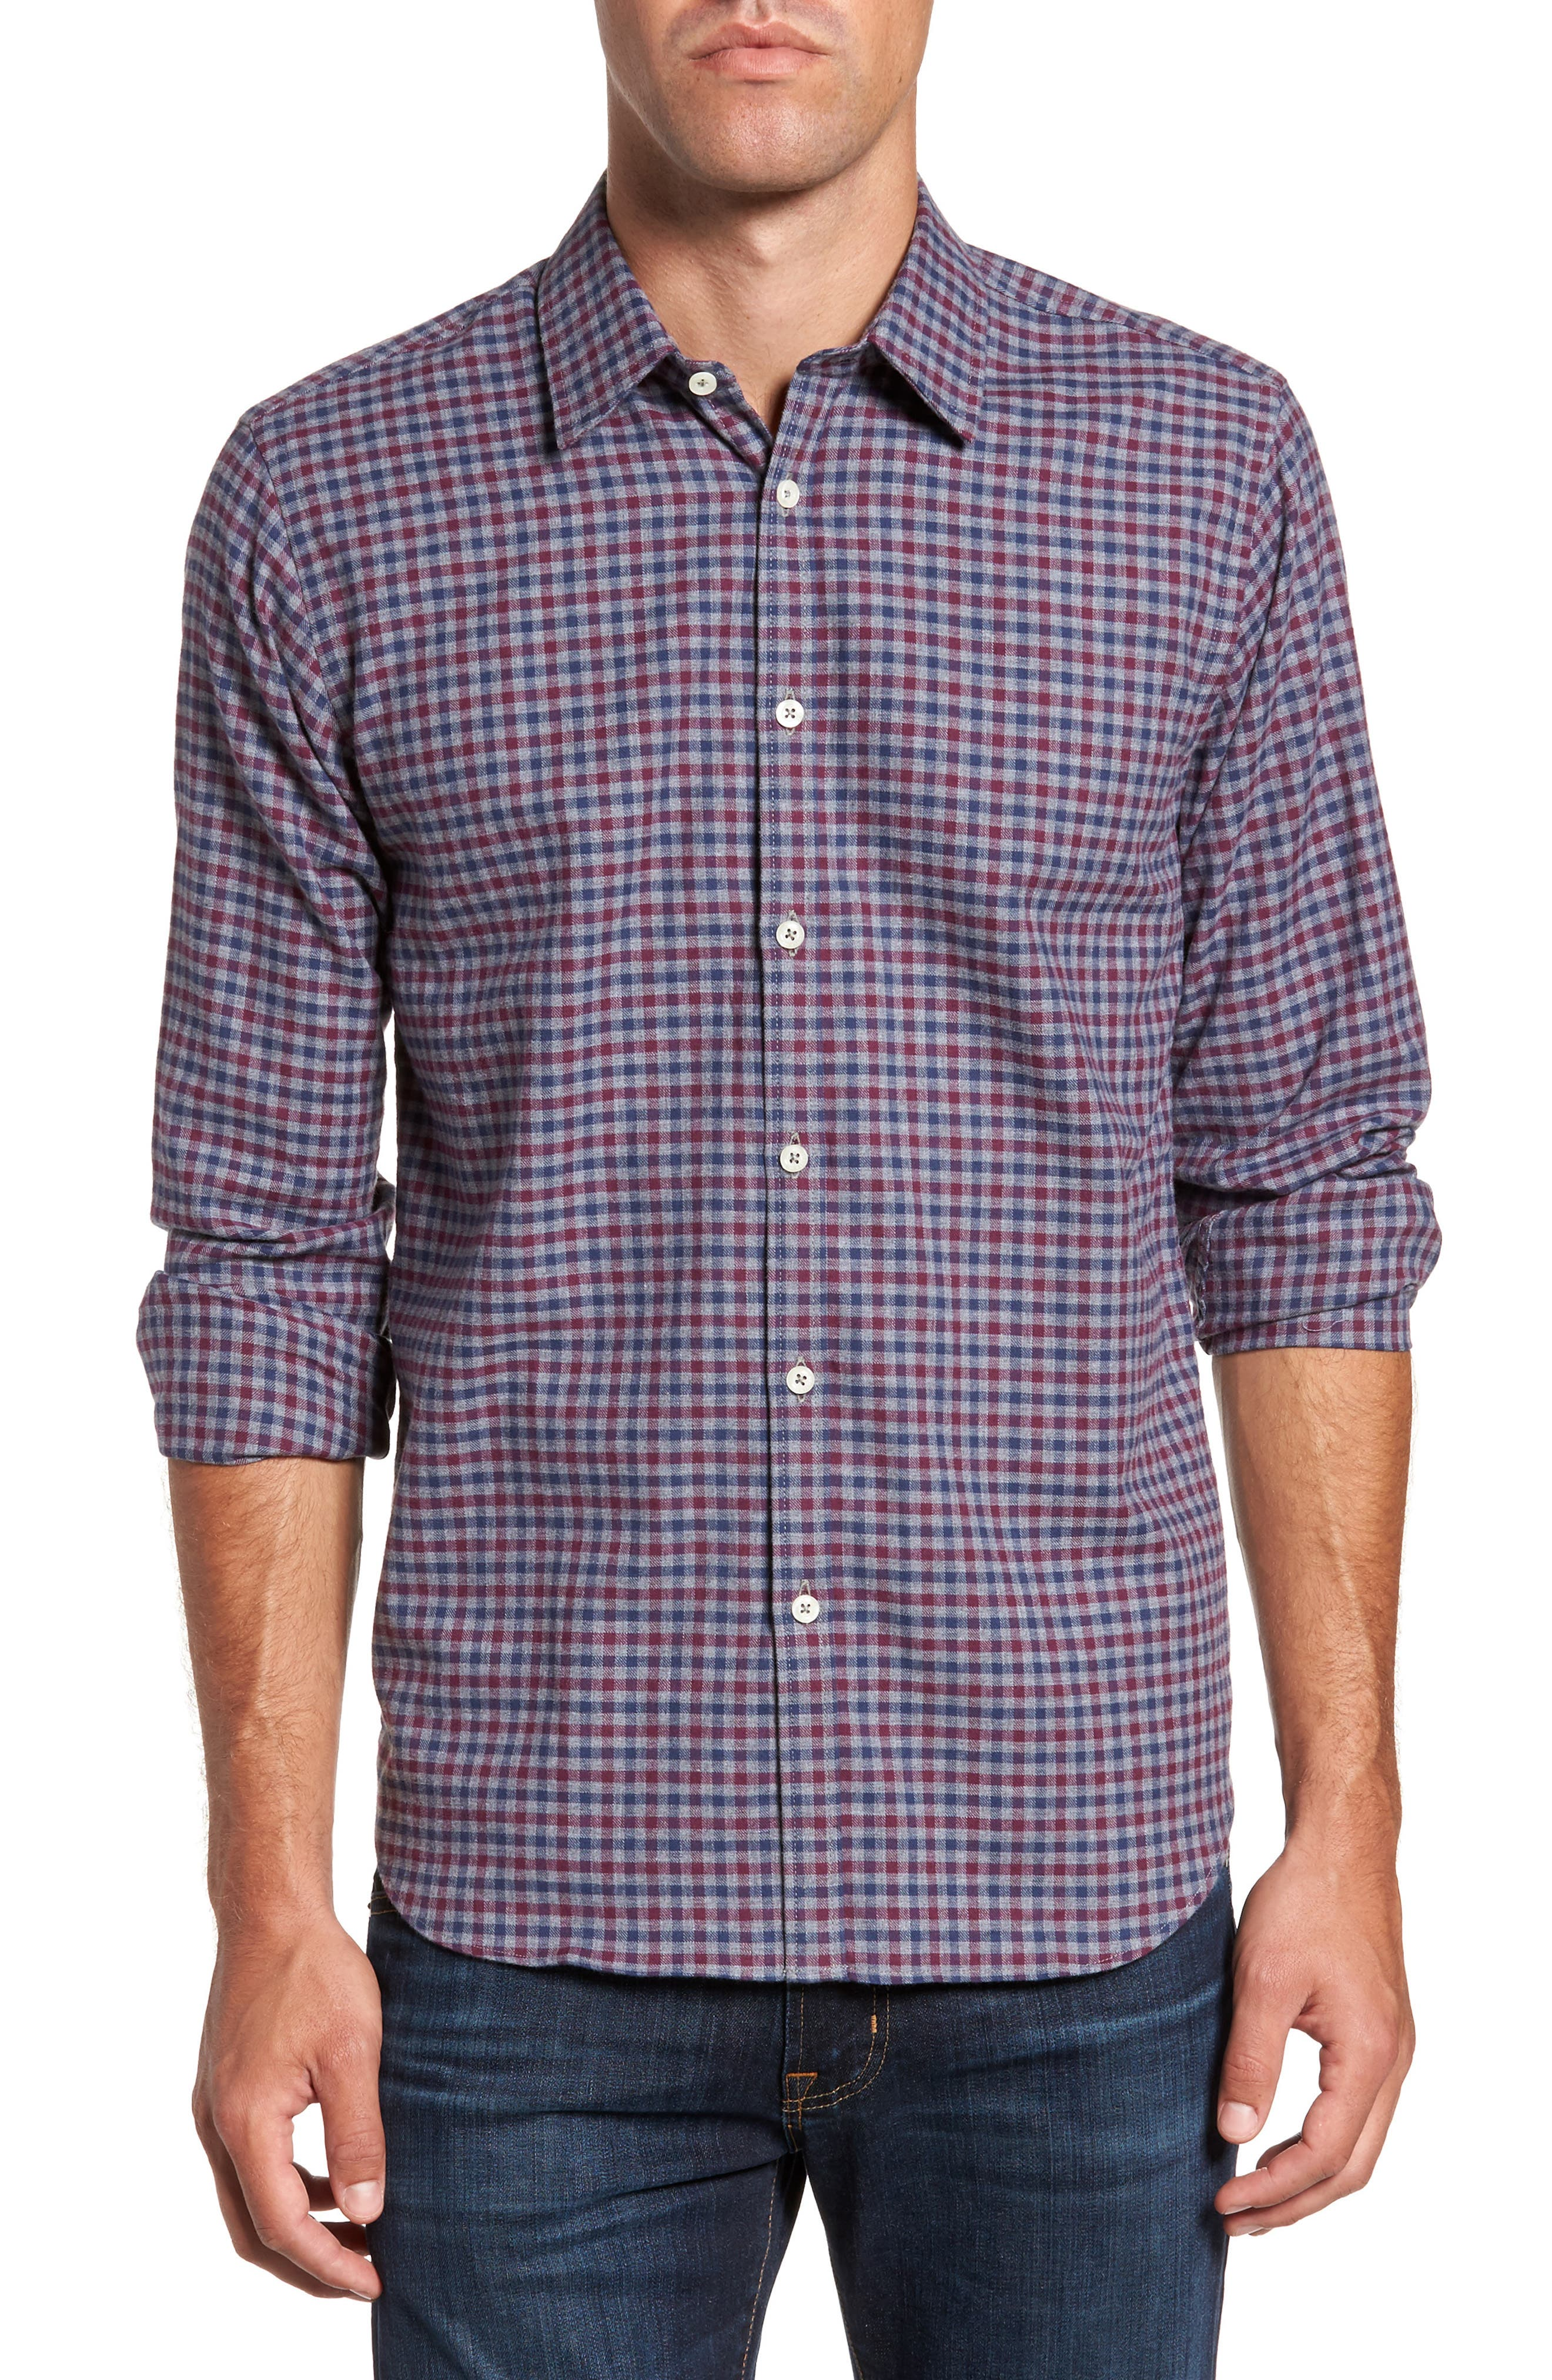 Jeremy Argyle Slim Fit Check Sport Shirt